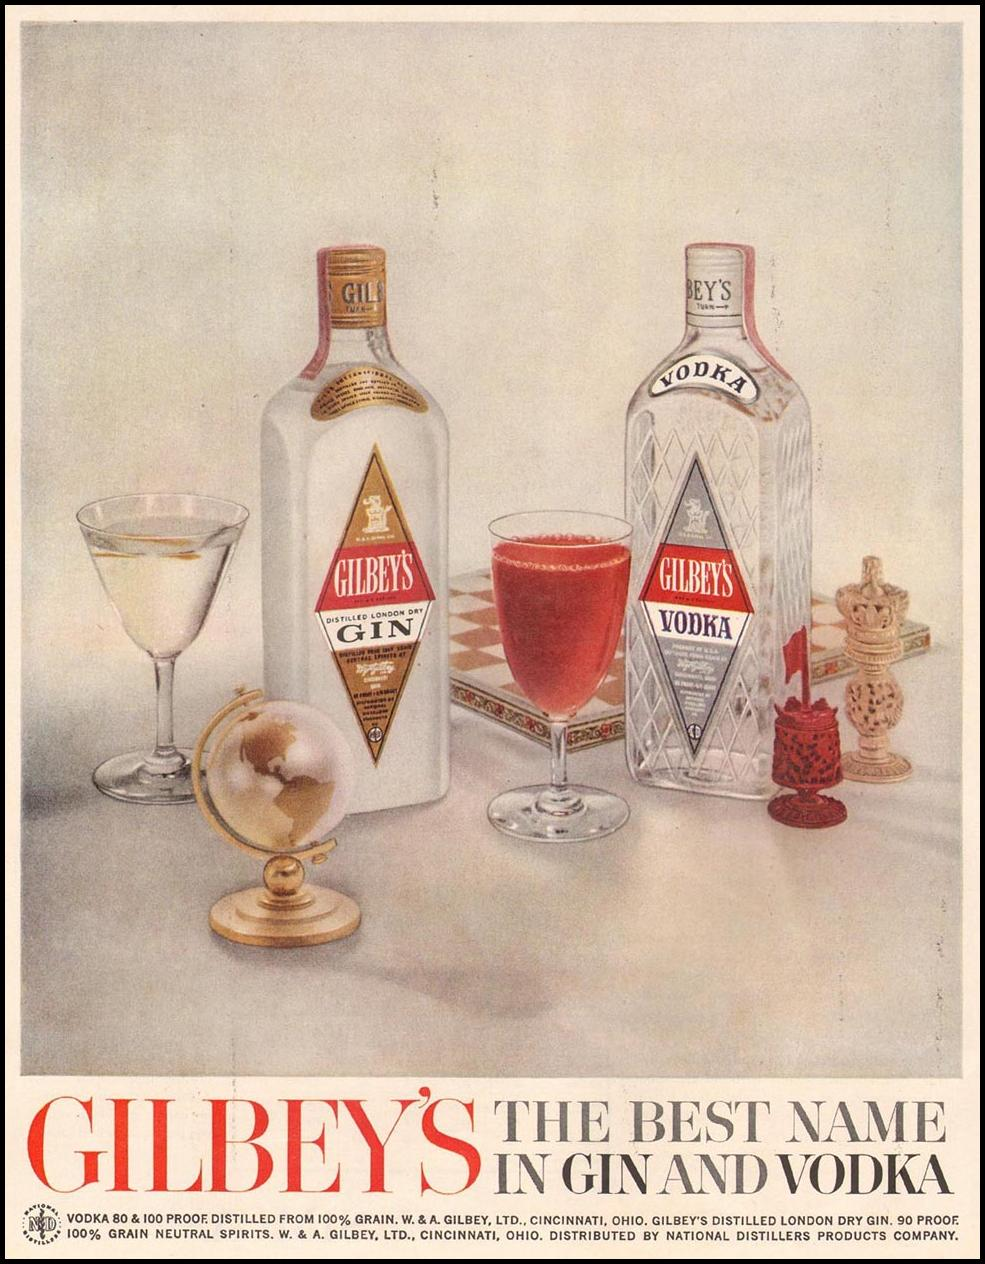 GILBEY'S GIN AND VODKA LIFE 10/05/1959 p. 122